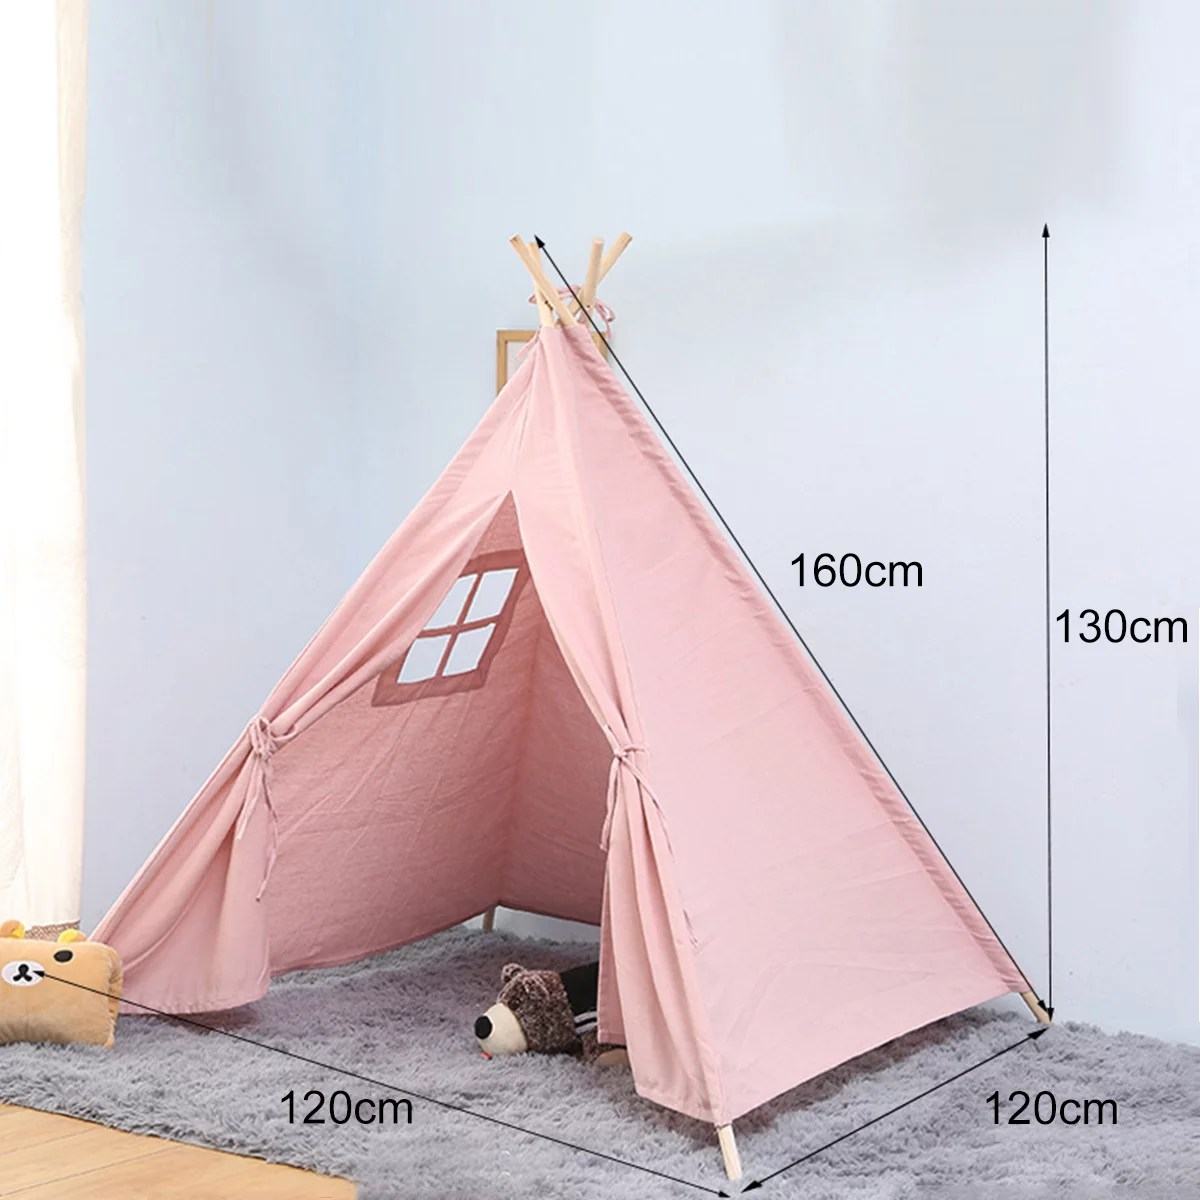 tents for kids outdoor indoor strip teepee tent for girls birthday gift portable kids playhouse sleeping dome play tent for boys princess castle play house for children walmart com walmart com